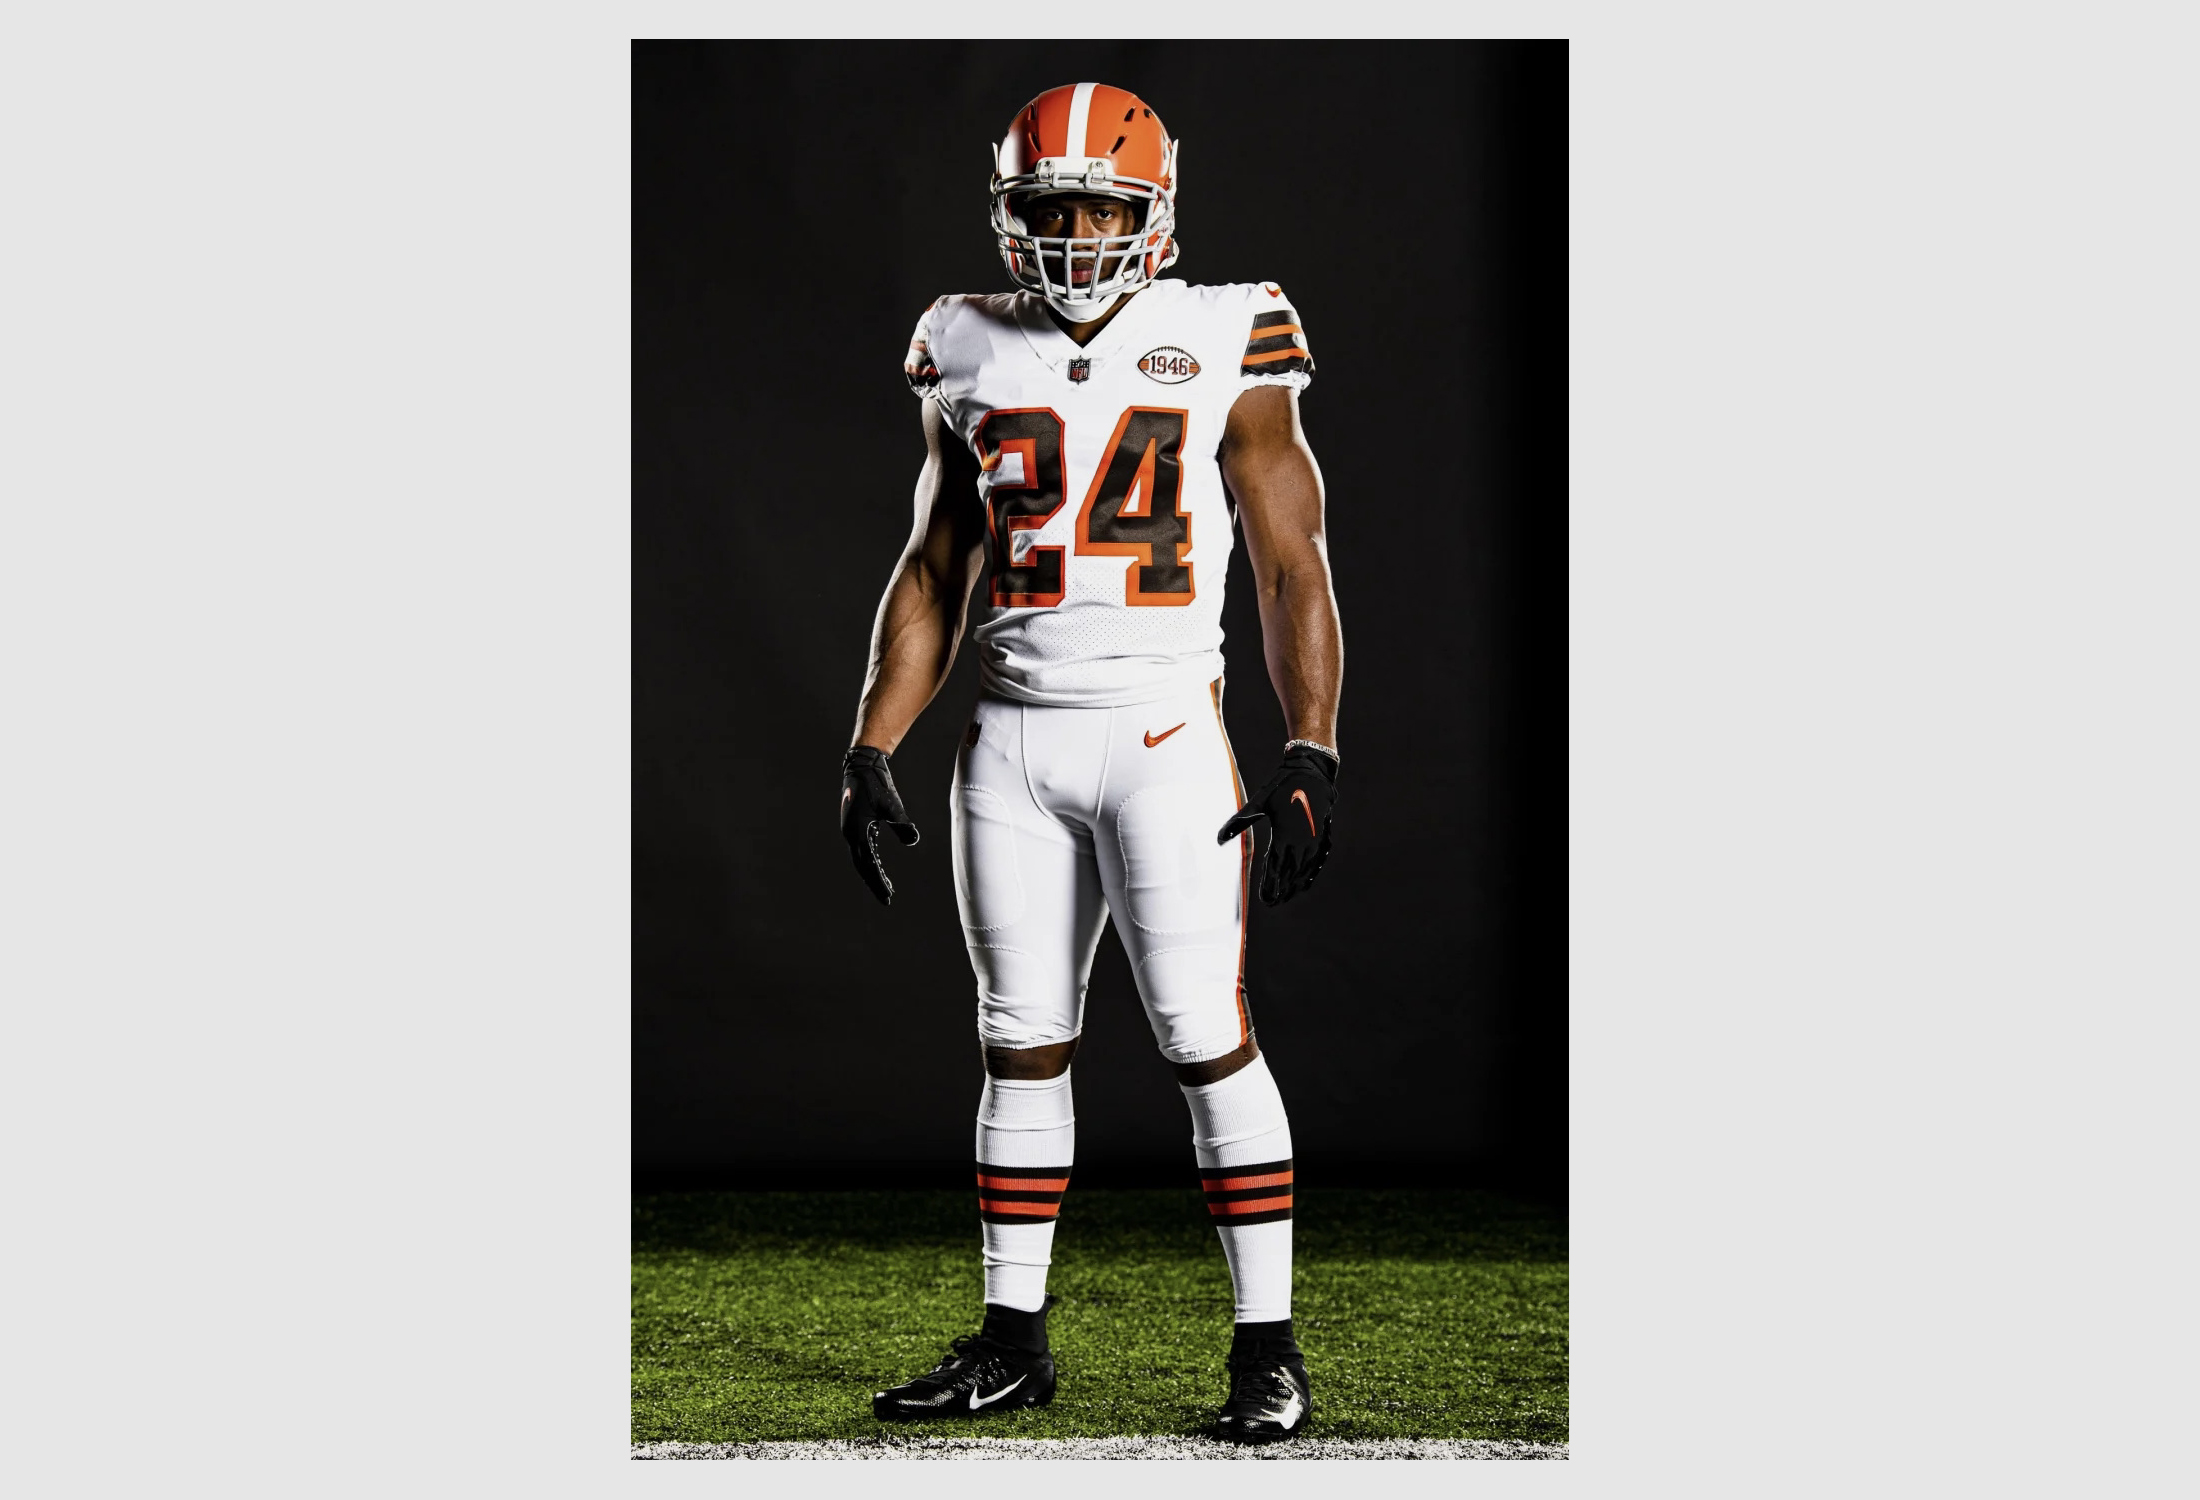 cleveland browns new uniforms 2021